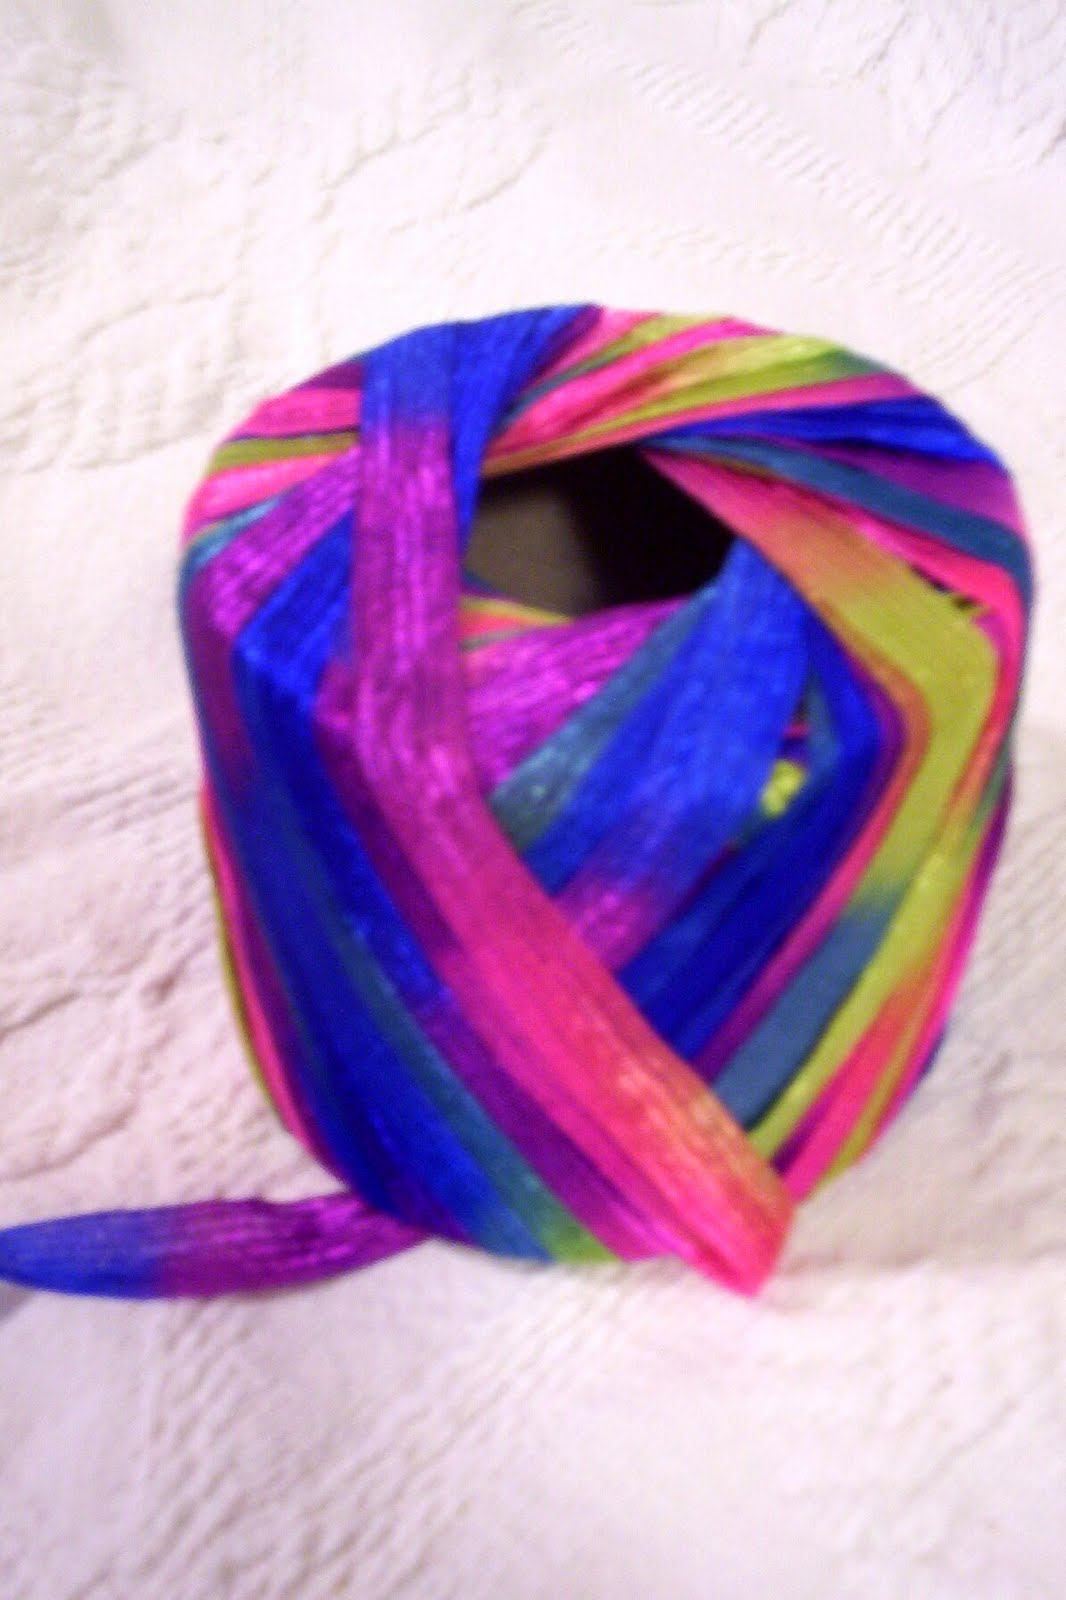 Ribbon Yarn : used a flat novelty ribbon yarn, but regular yarn also works]